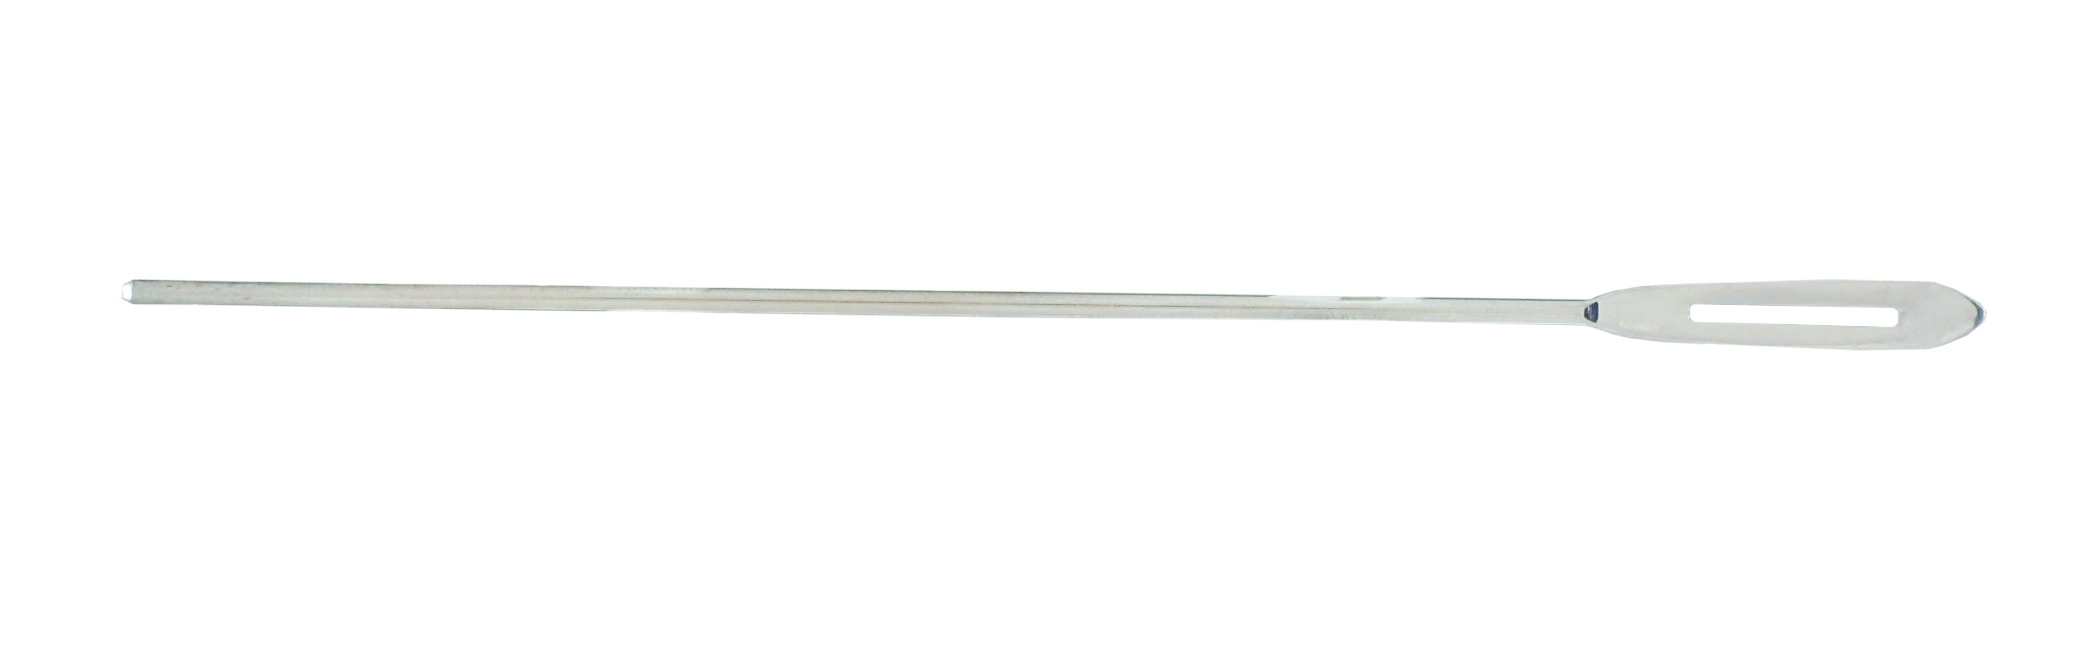 miltex-probes-with-eye-malleable-5-1-2-14-cm-stainless-10-26-ss-miltex.jpg